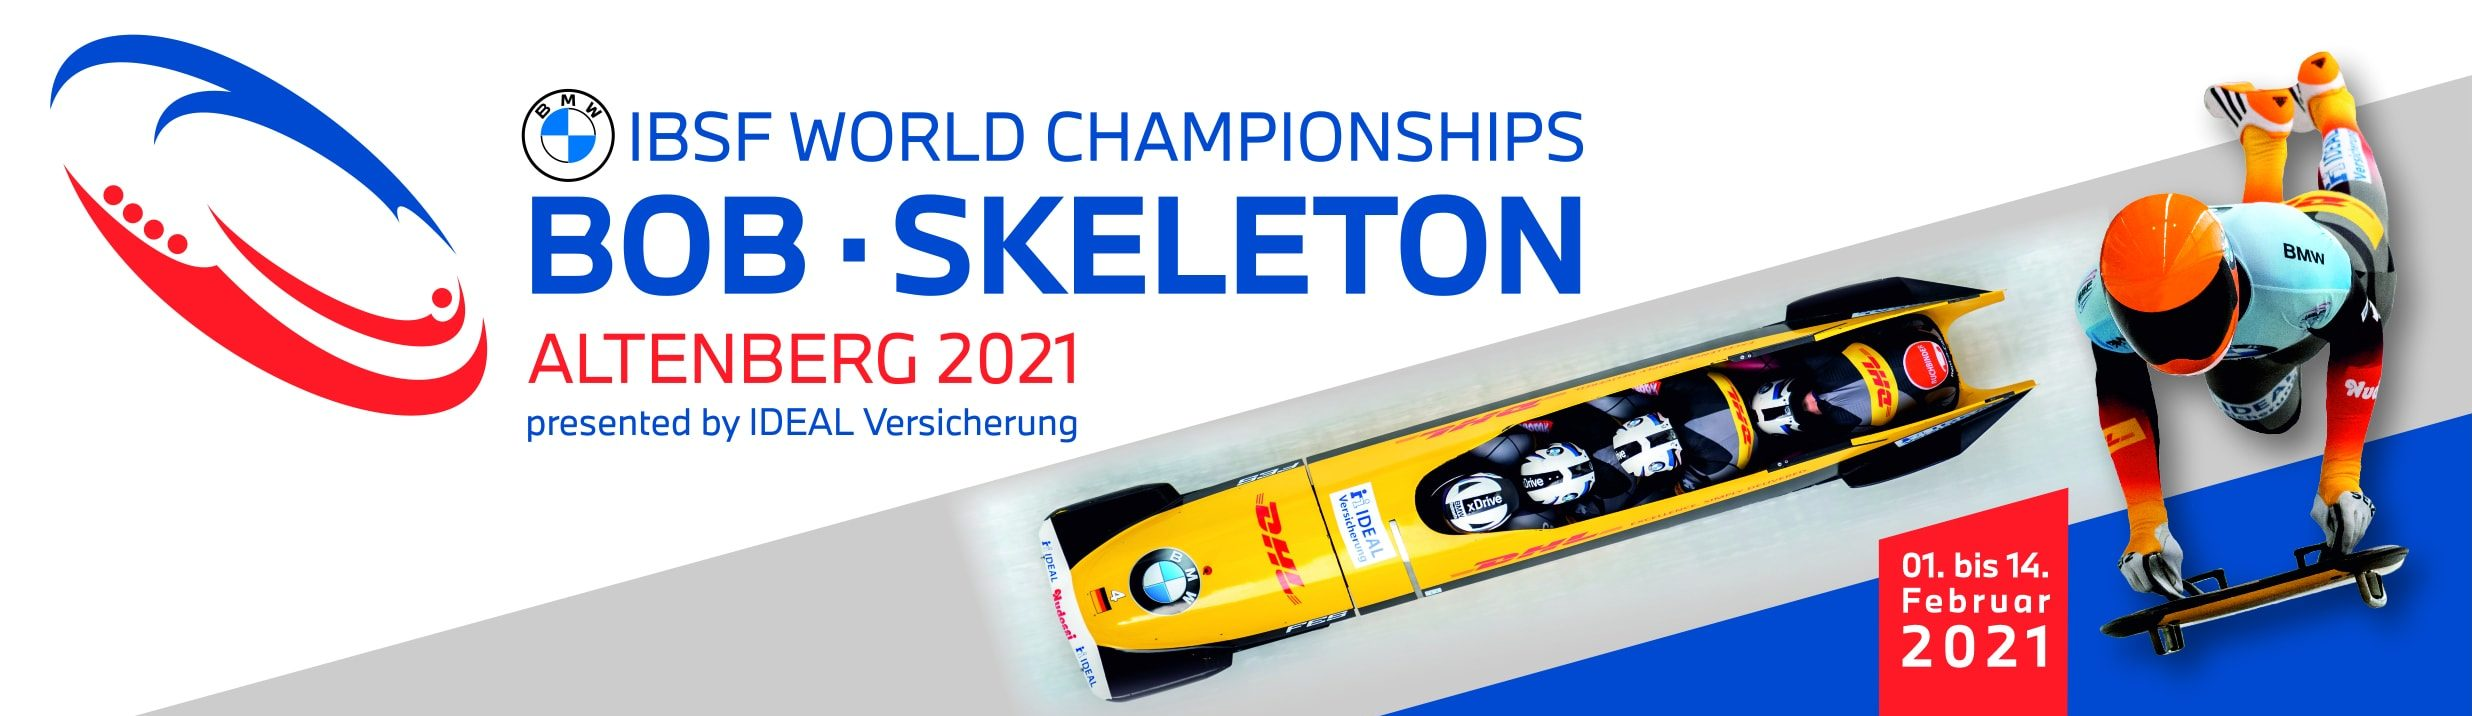 Bob + Skeleton WM 2021 Altenberg